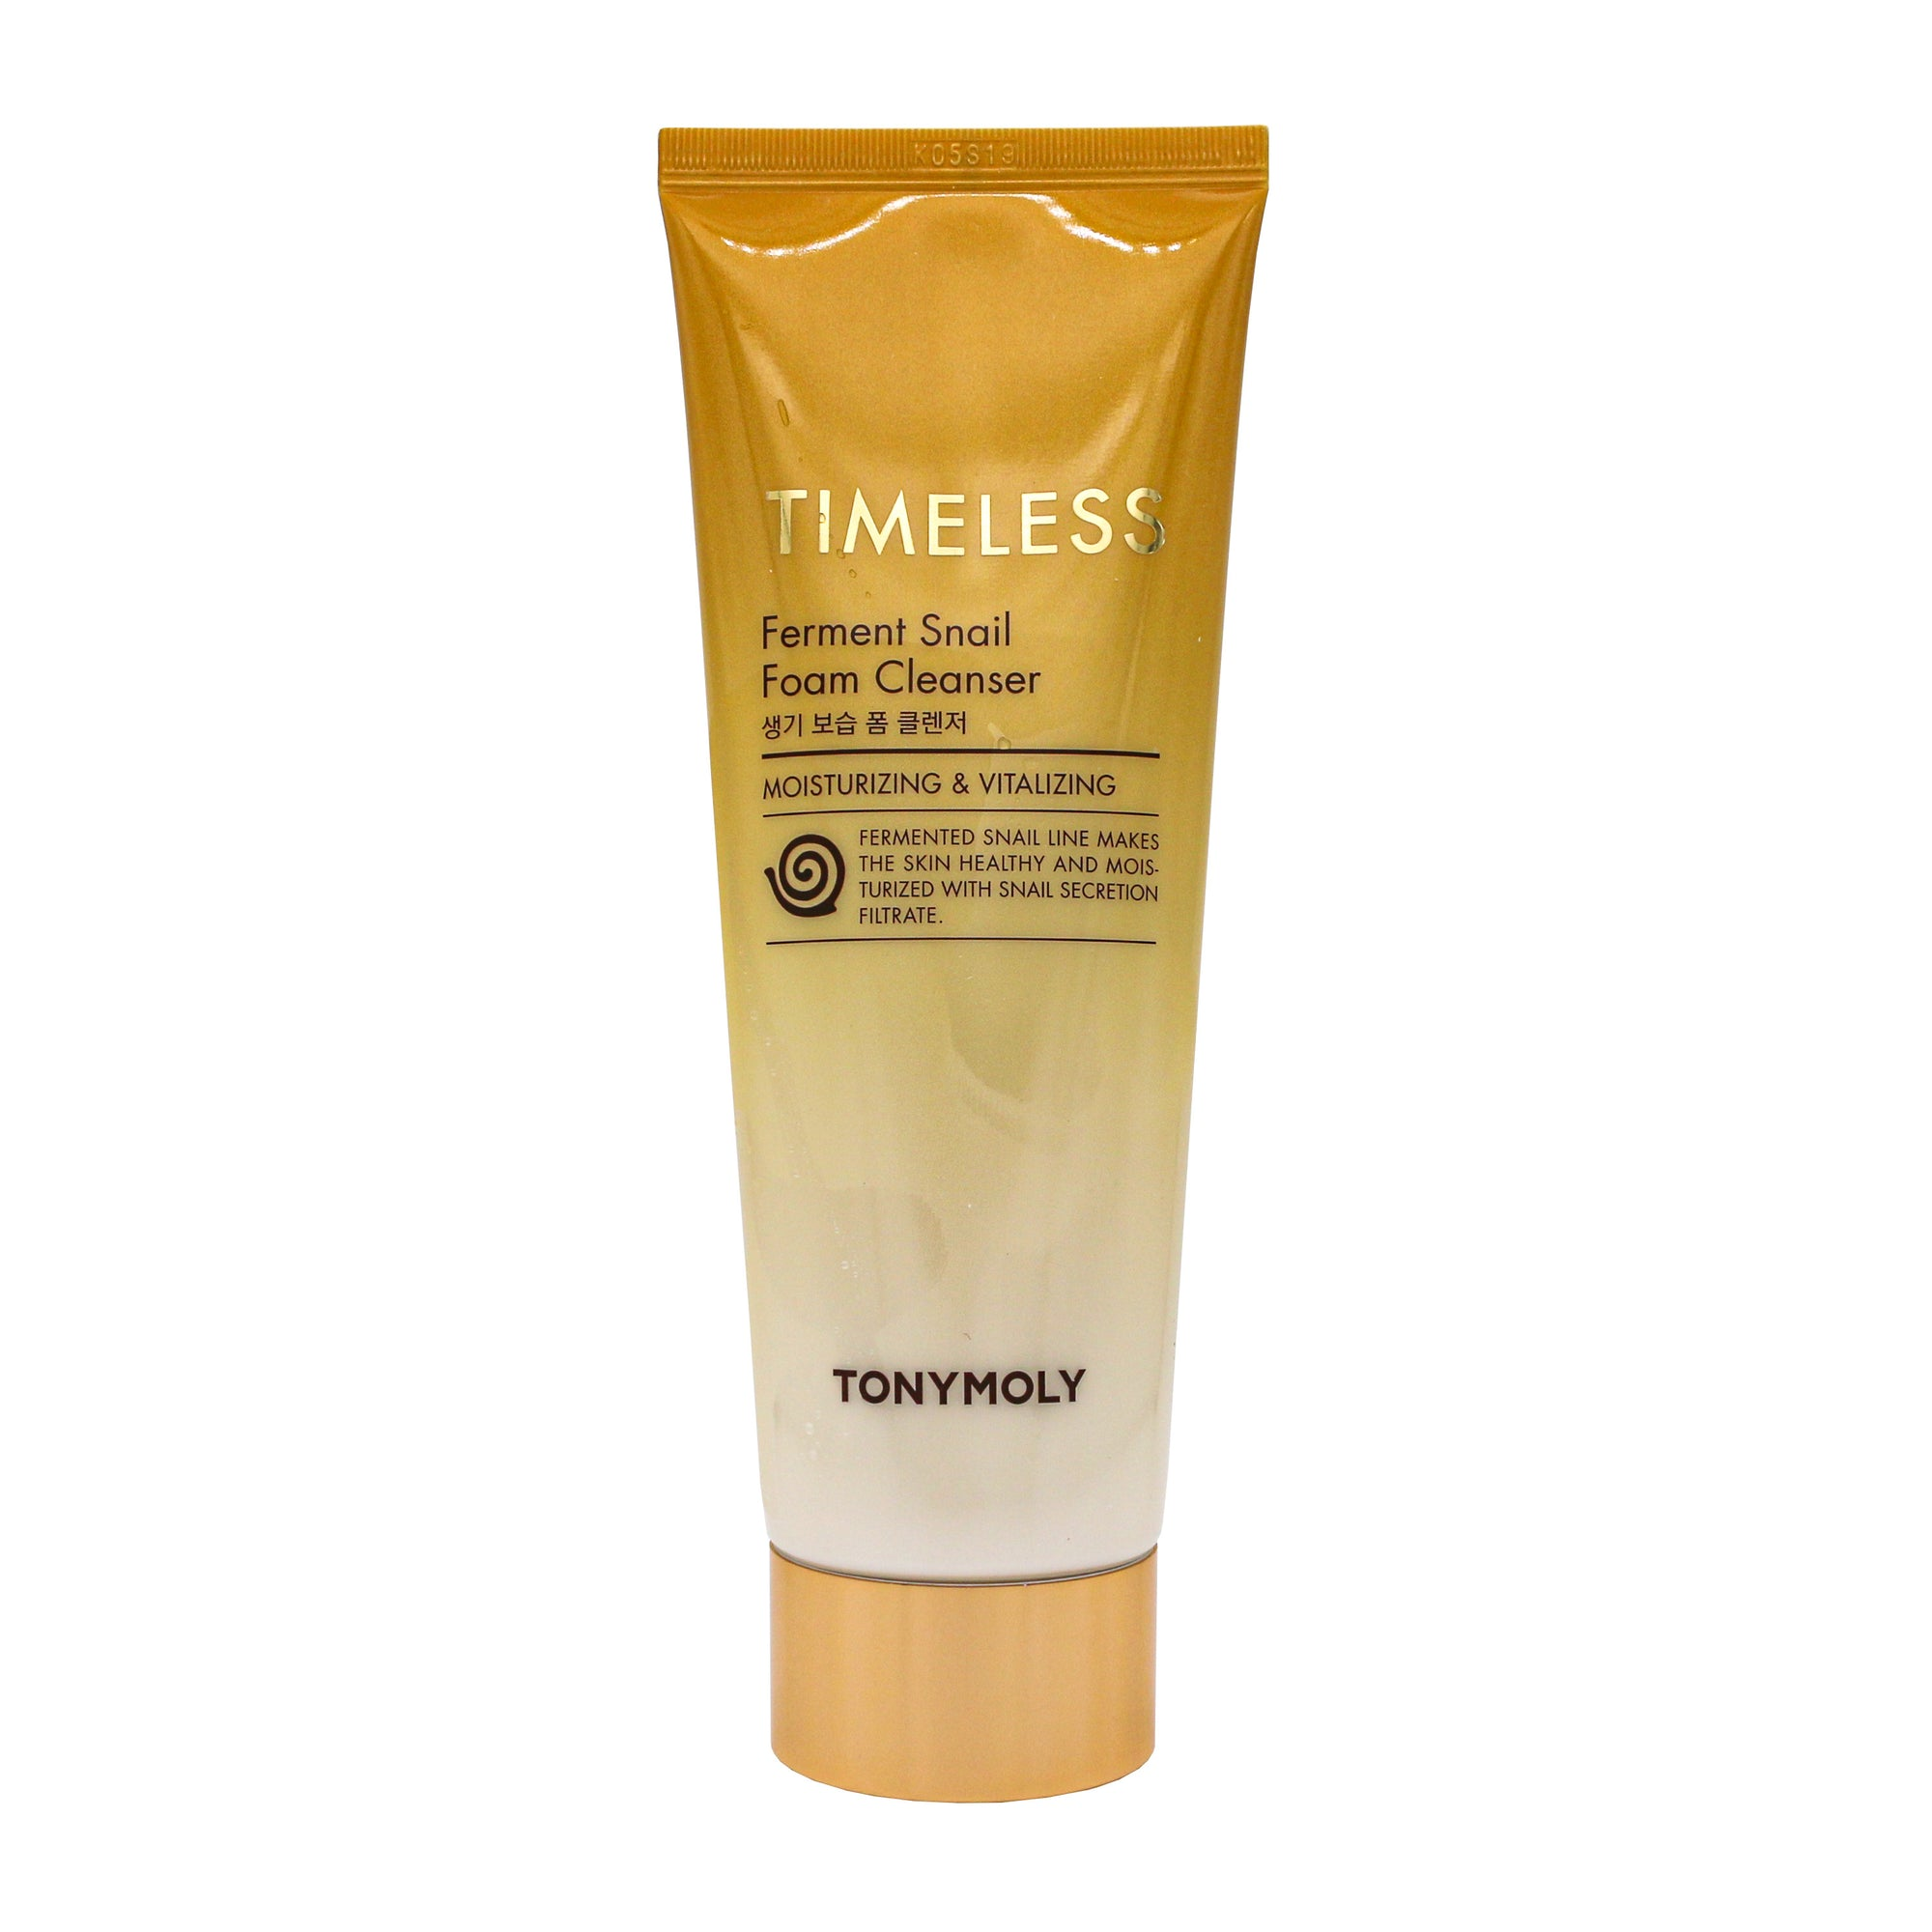 TONYMOLY Timeless Ferment Snail Foam Cleanser 150ml | Korean Skin Care